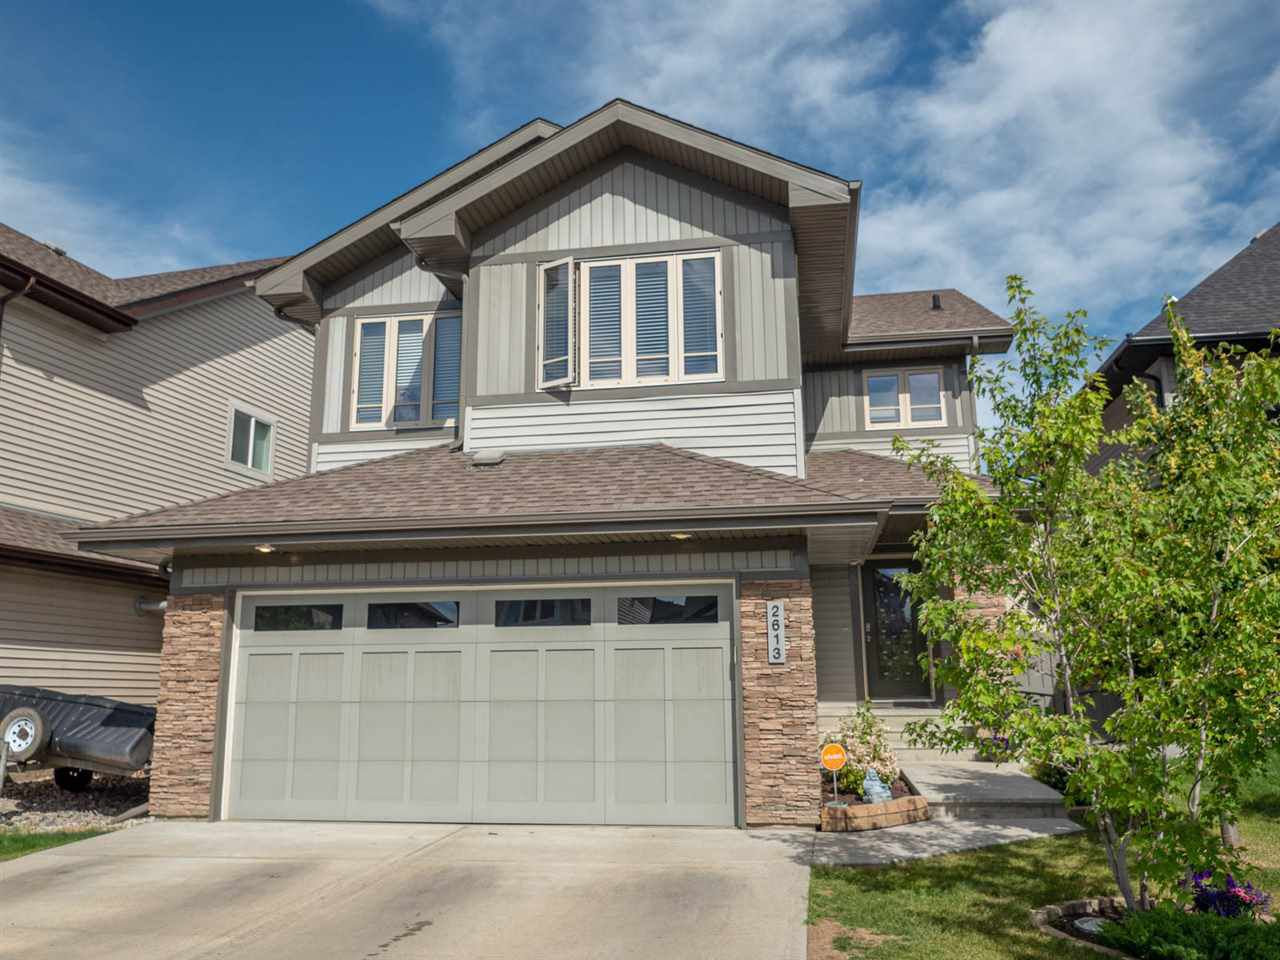 Main Photo: 2613 ANDERSON Crescent in Edmonton: Zone 56 House for sale : MLS®# E4137771